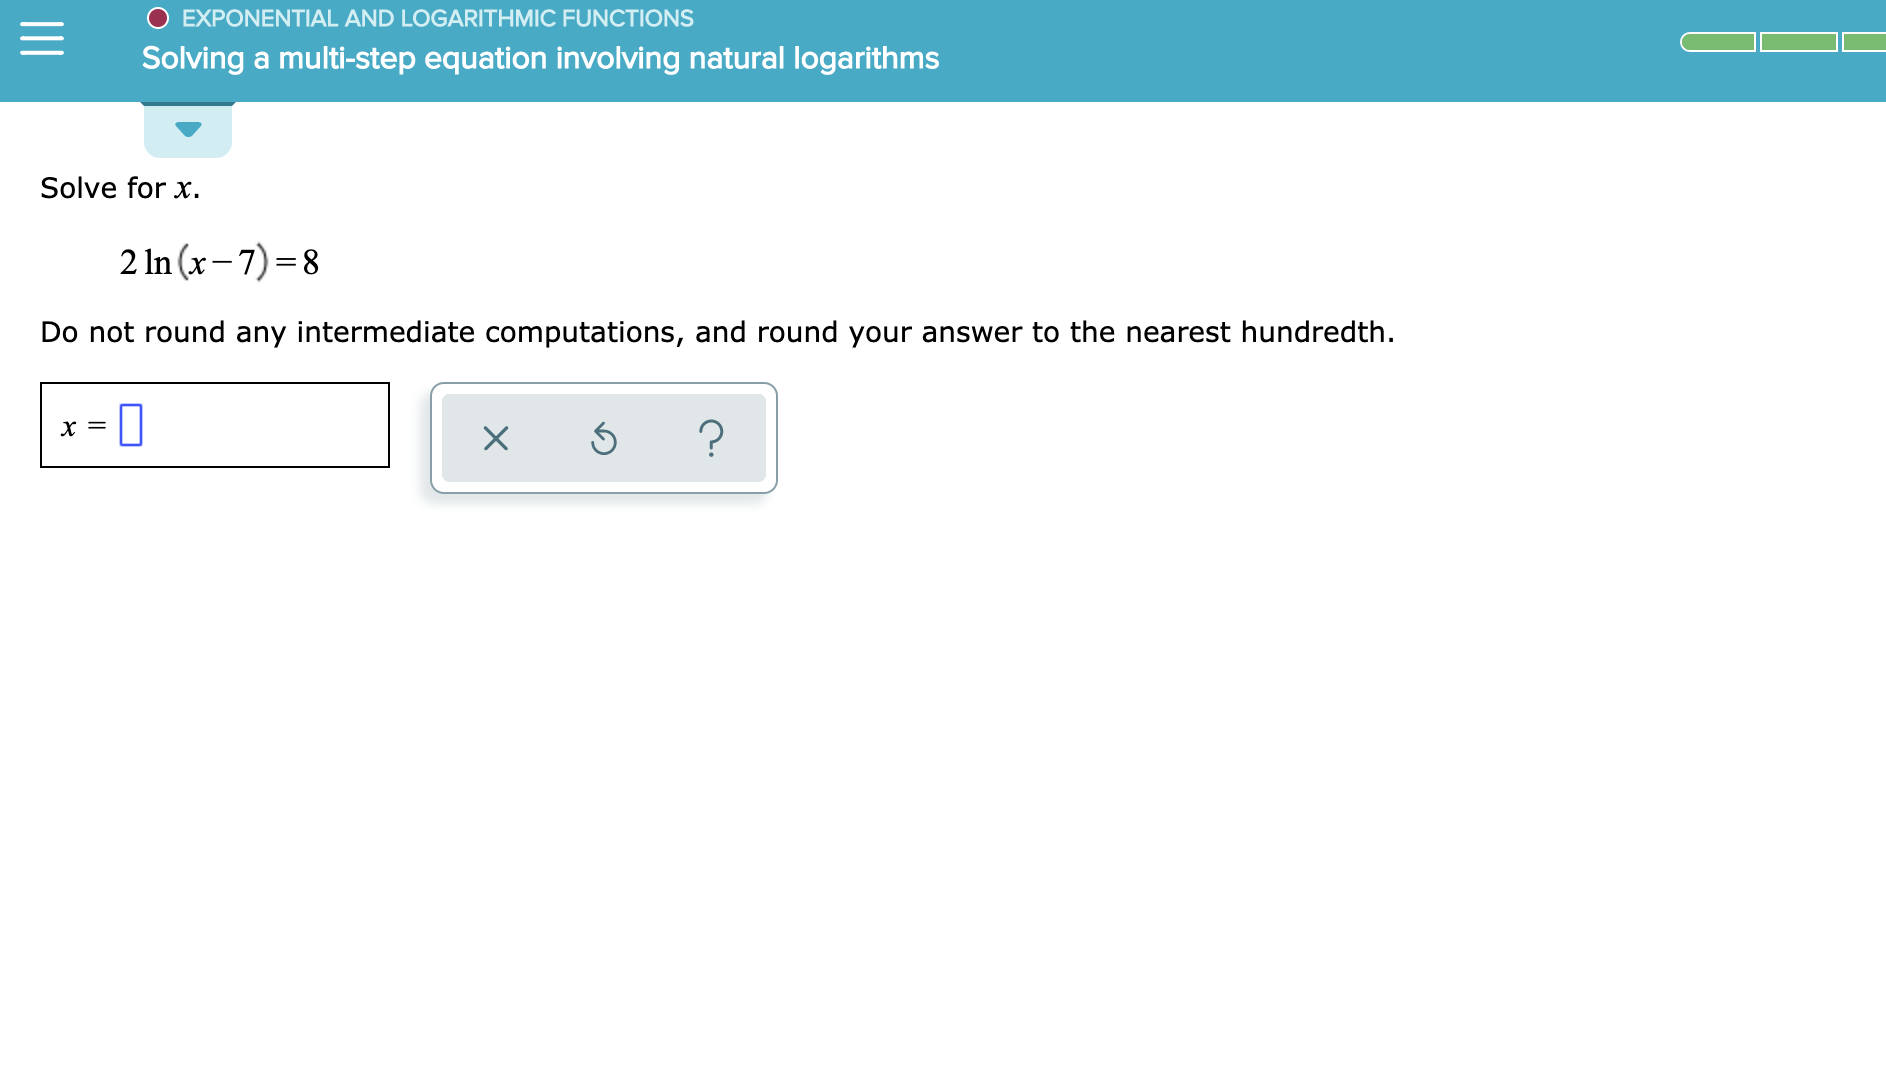 EXPONENTIAL AND LOGARITHMIC FUNCTIONS Solving a multi-step equation involving natural logarithms Solve for x 2 In (x-7) 8 Do not round any intermediate computations, and round your answer to the nearest hundredth ? X X